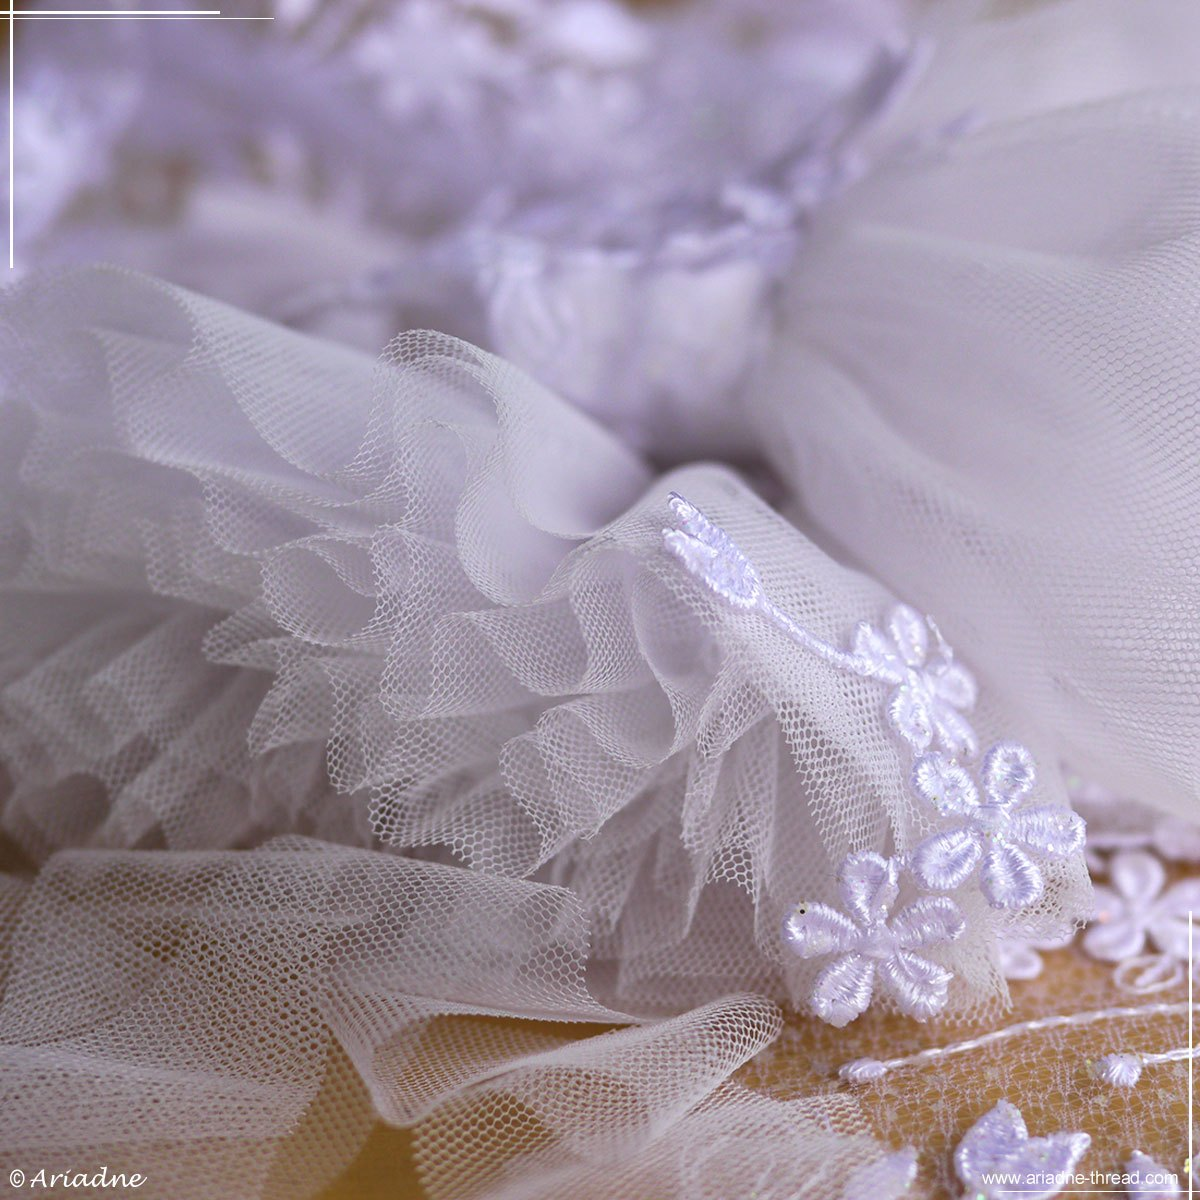 Sewing process of snowflakes costumes for BJD